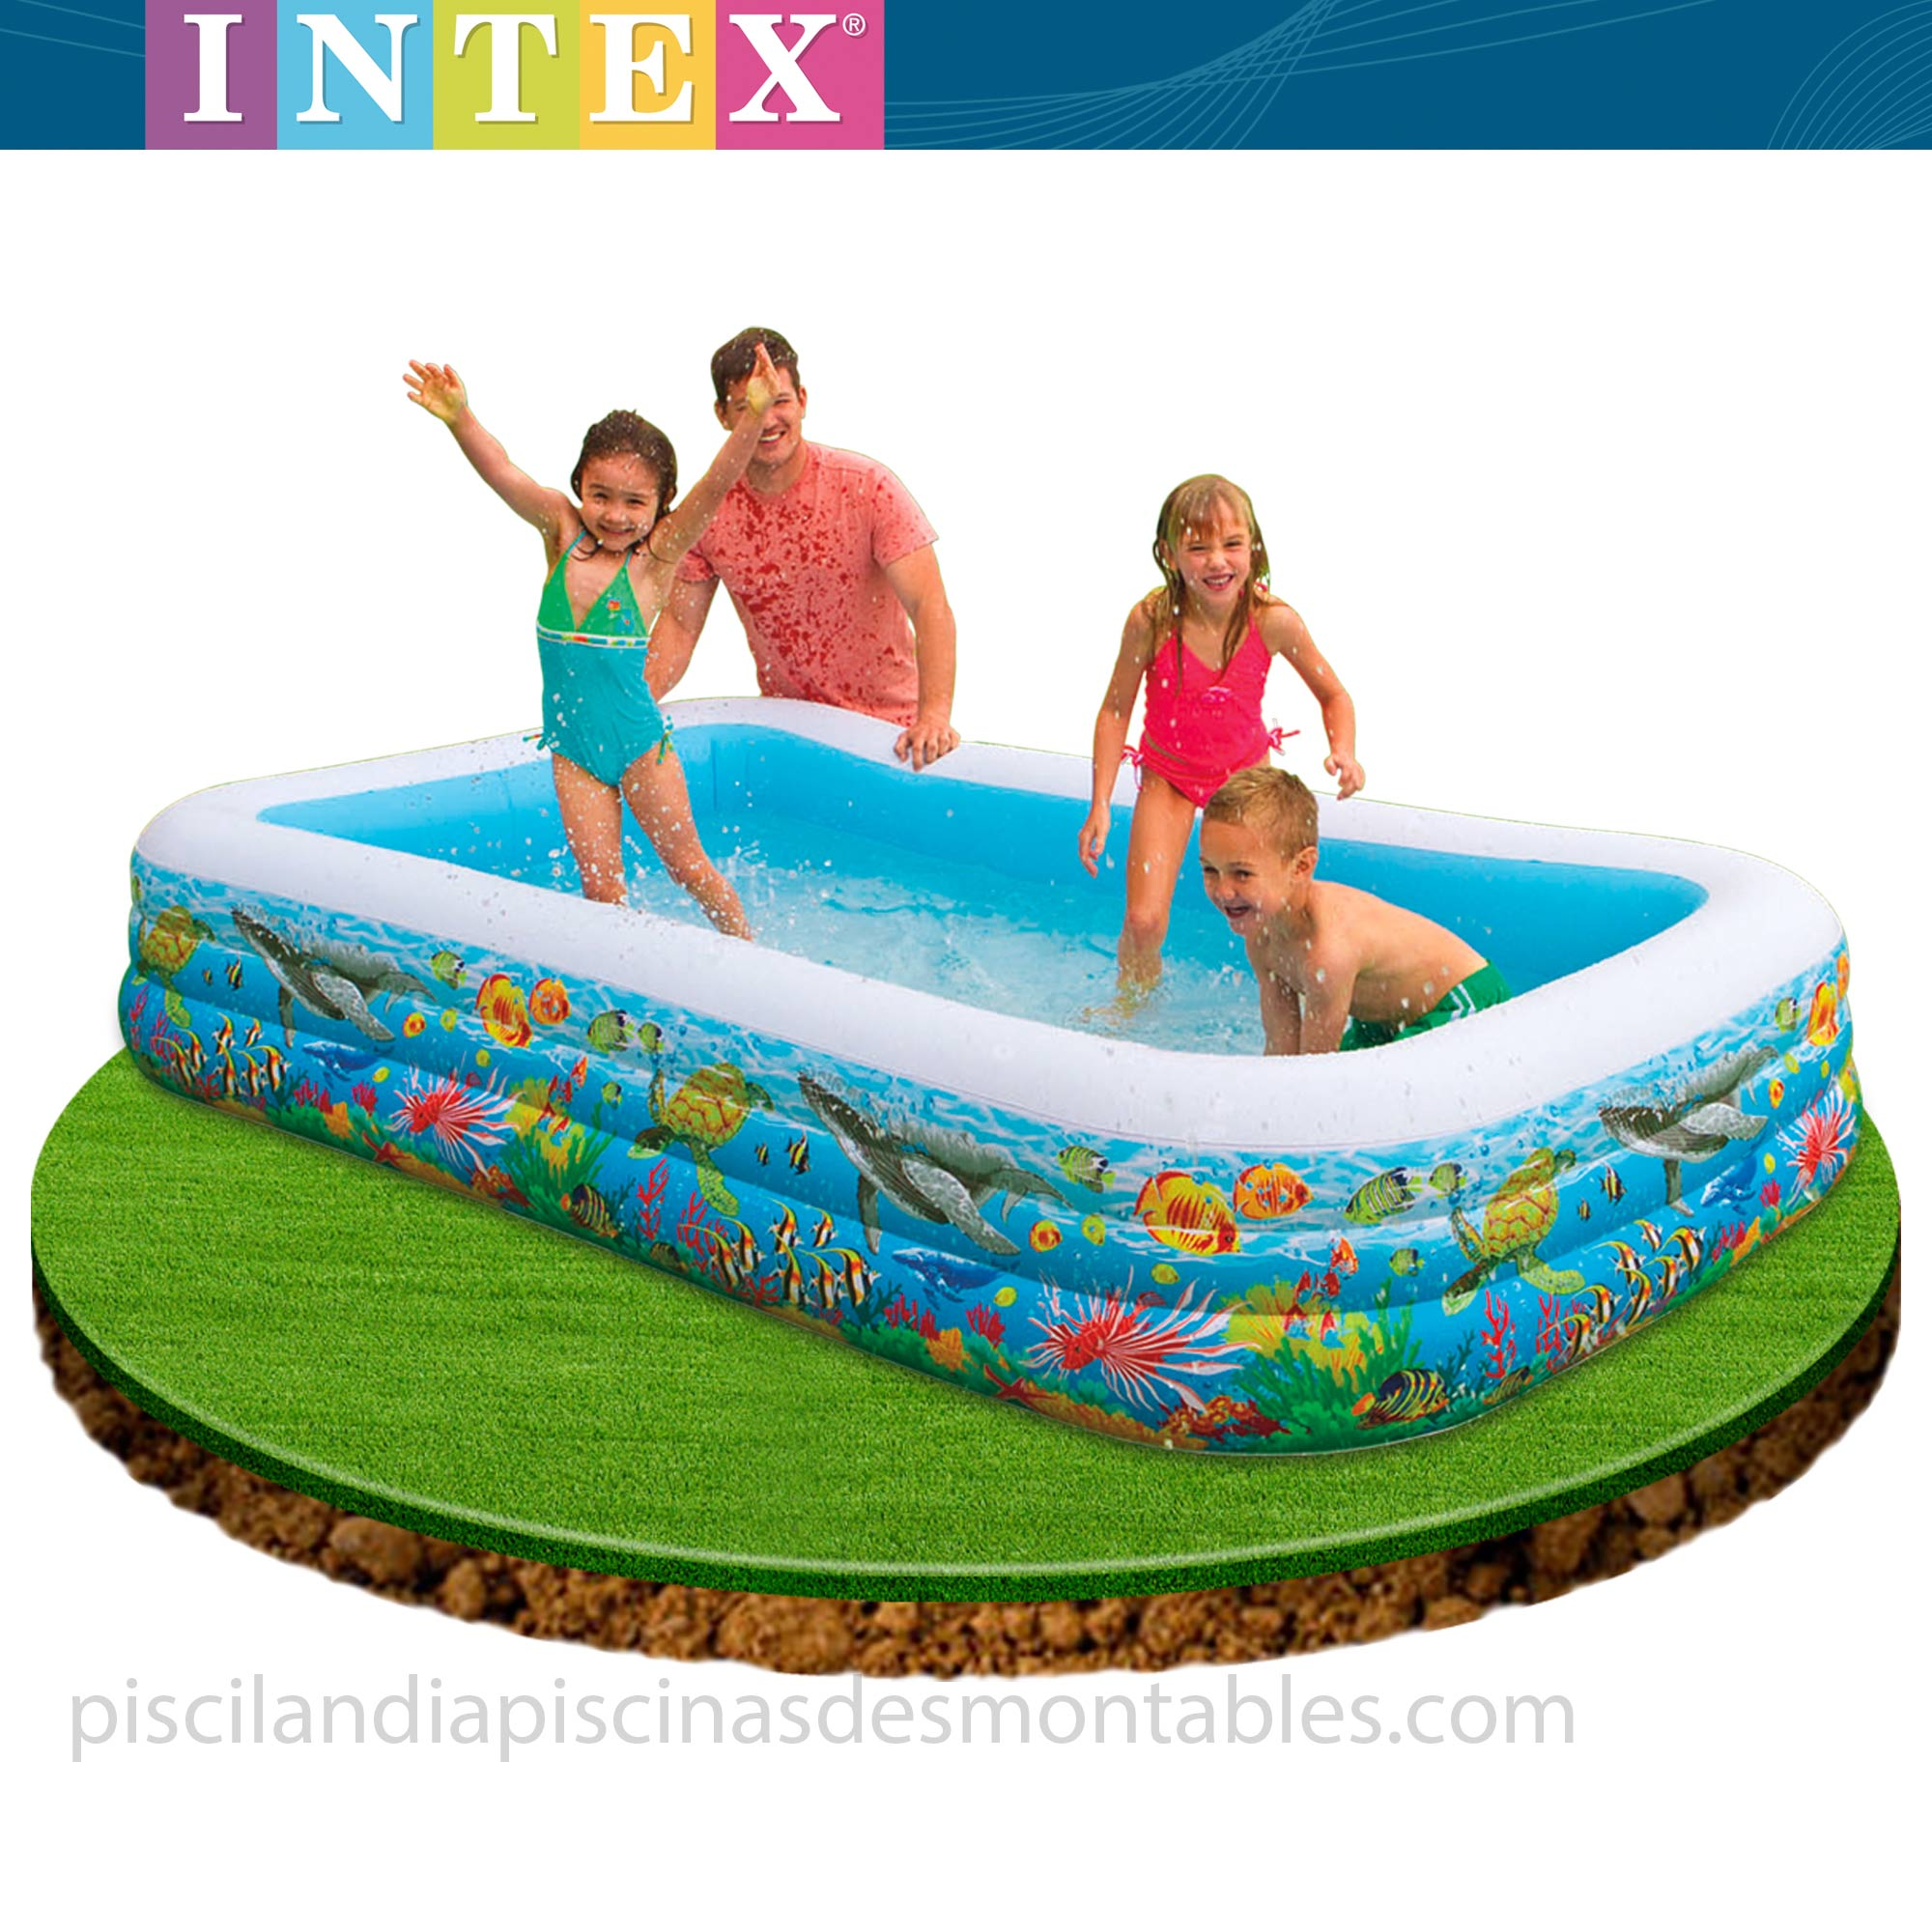 Piscina hinchable infantil modelo tropical medidas 305 x for Piscinas hinchables infantiles